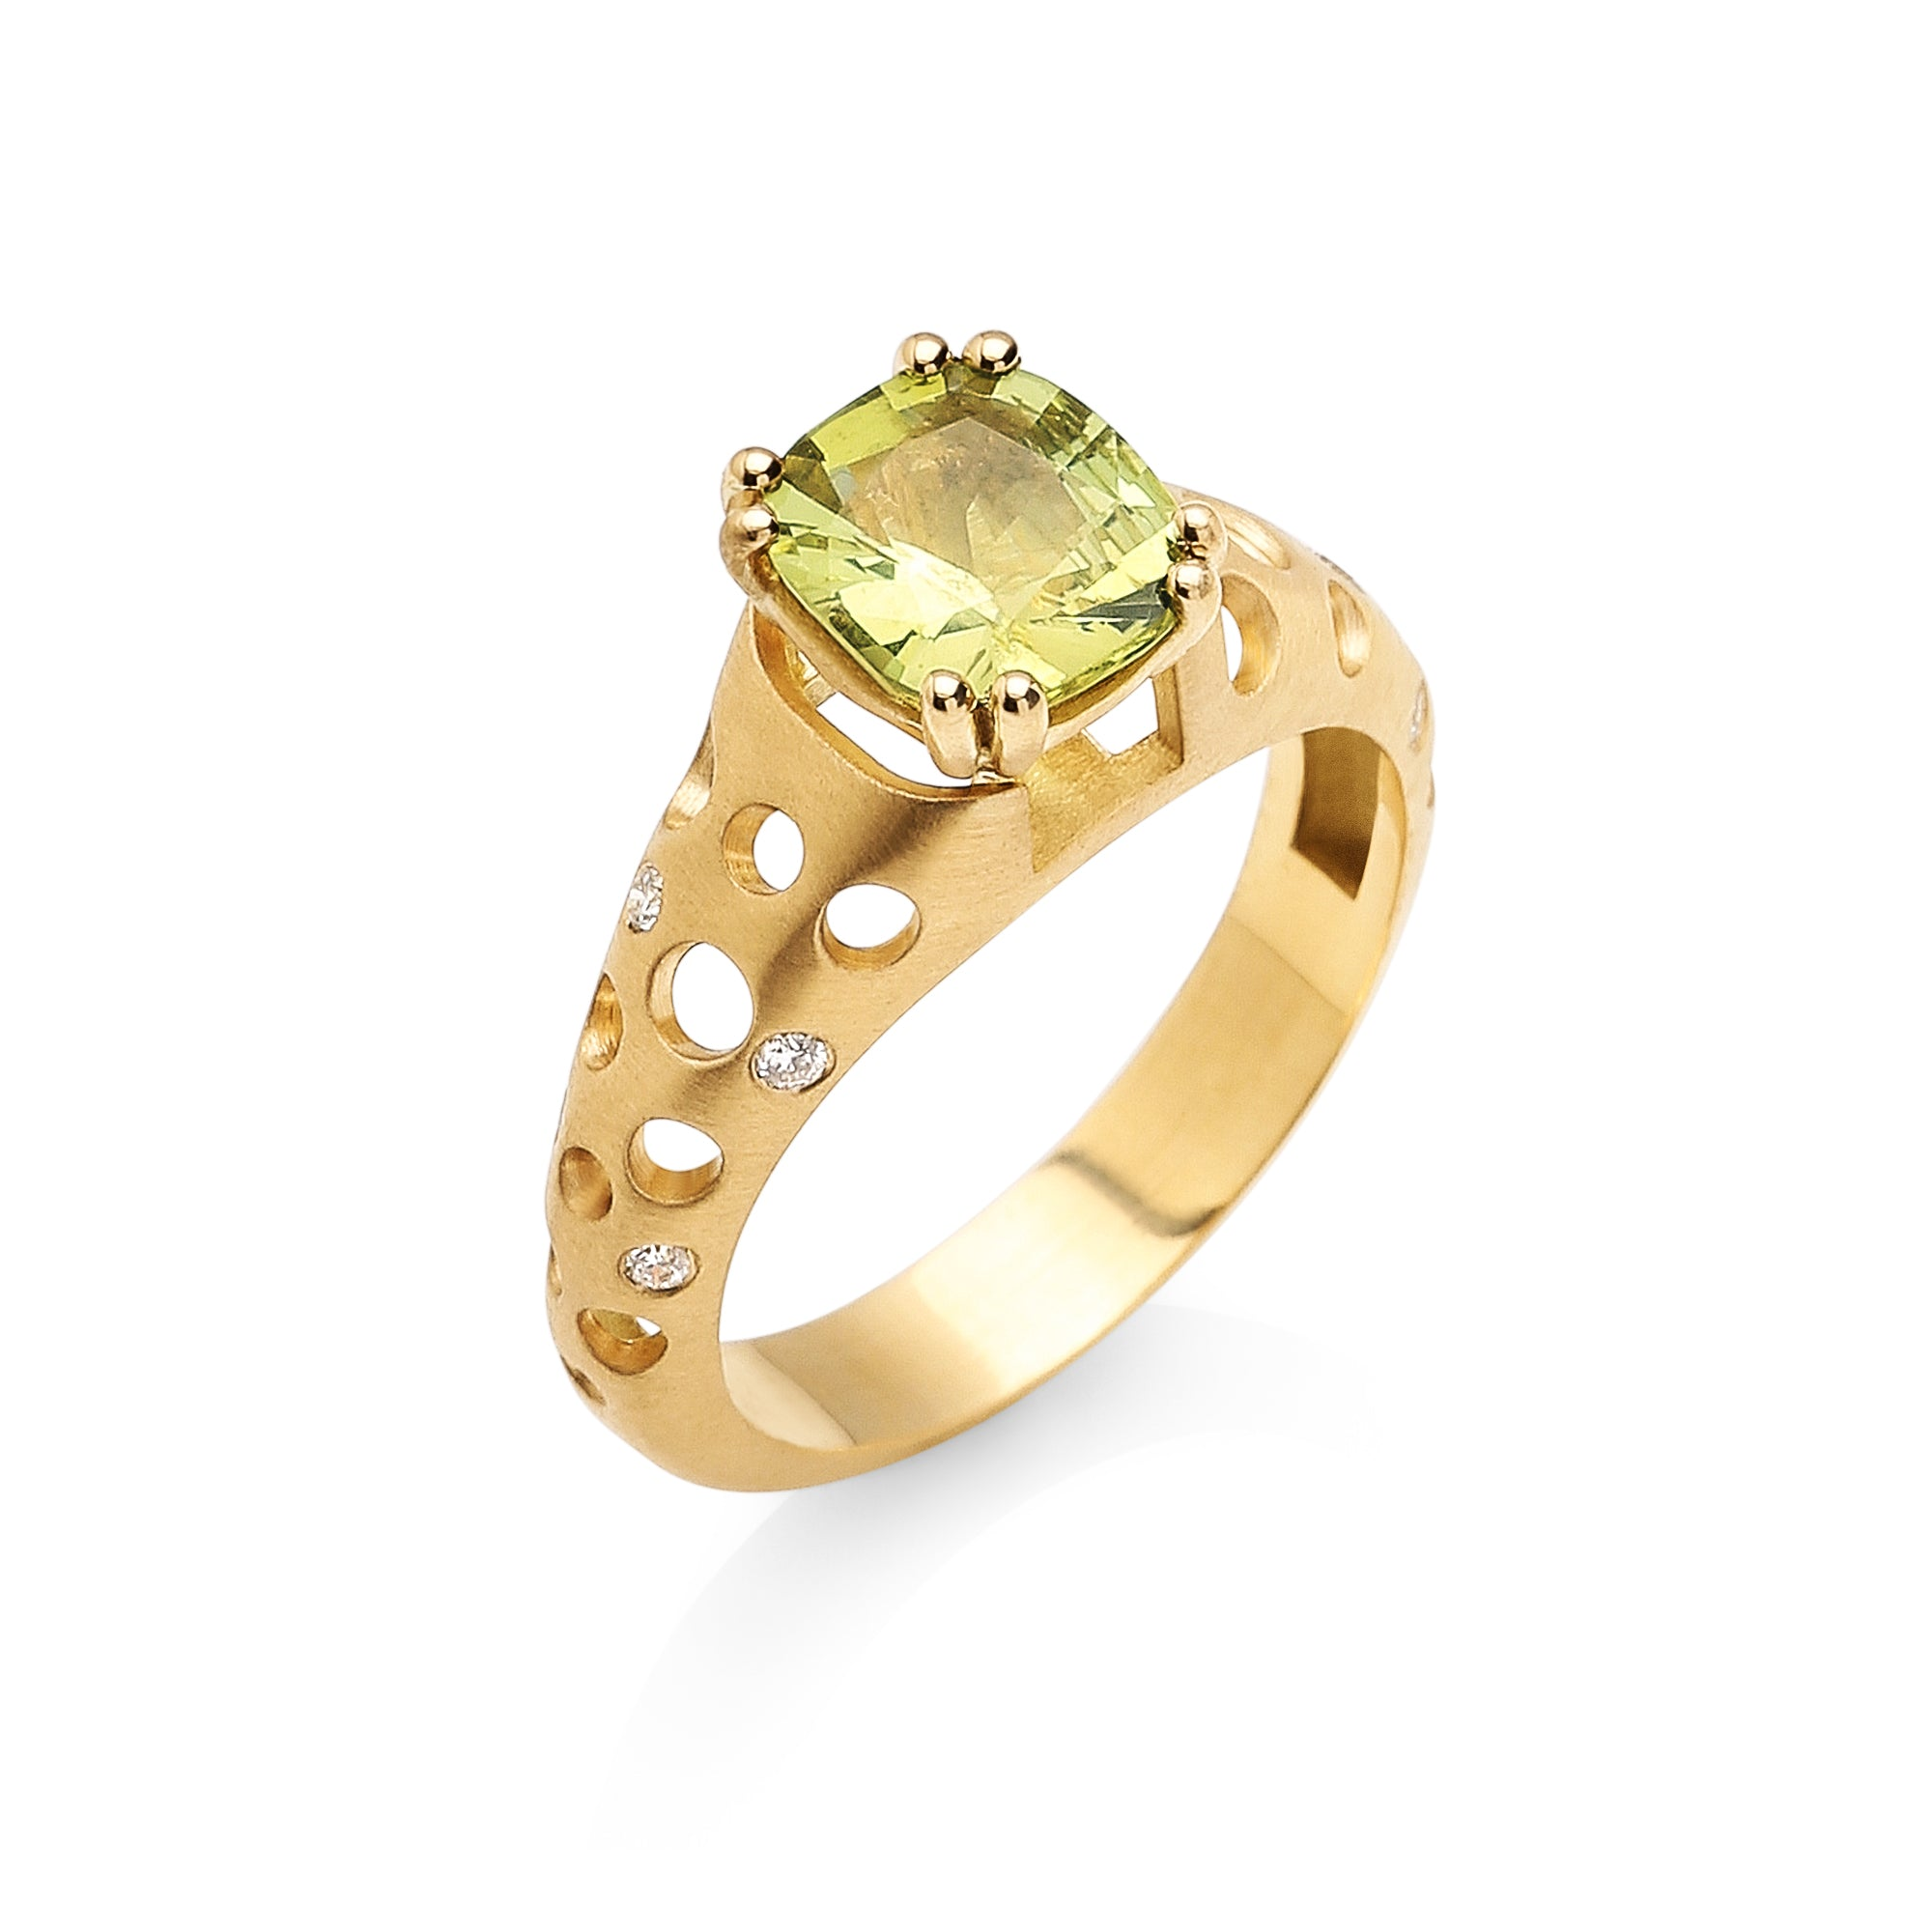 Yellow-Green Chrysoberyl Ring with Tapered Oculus Band